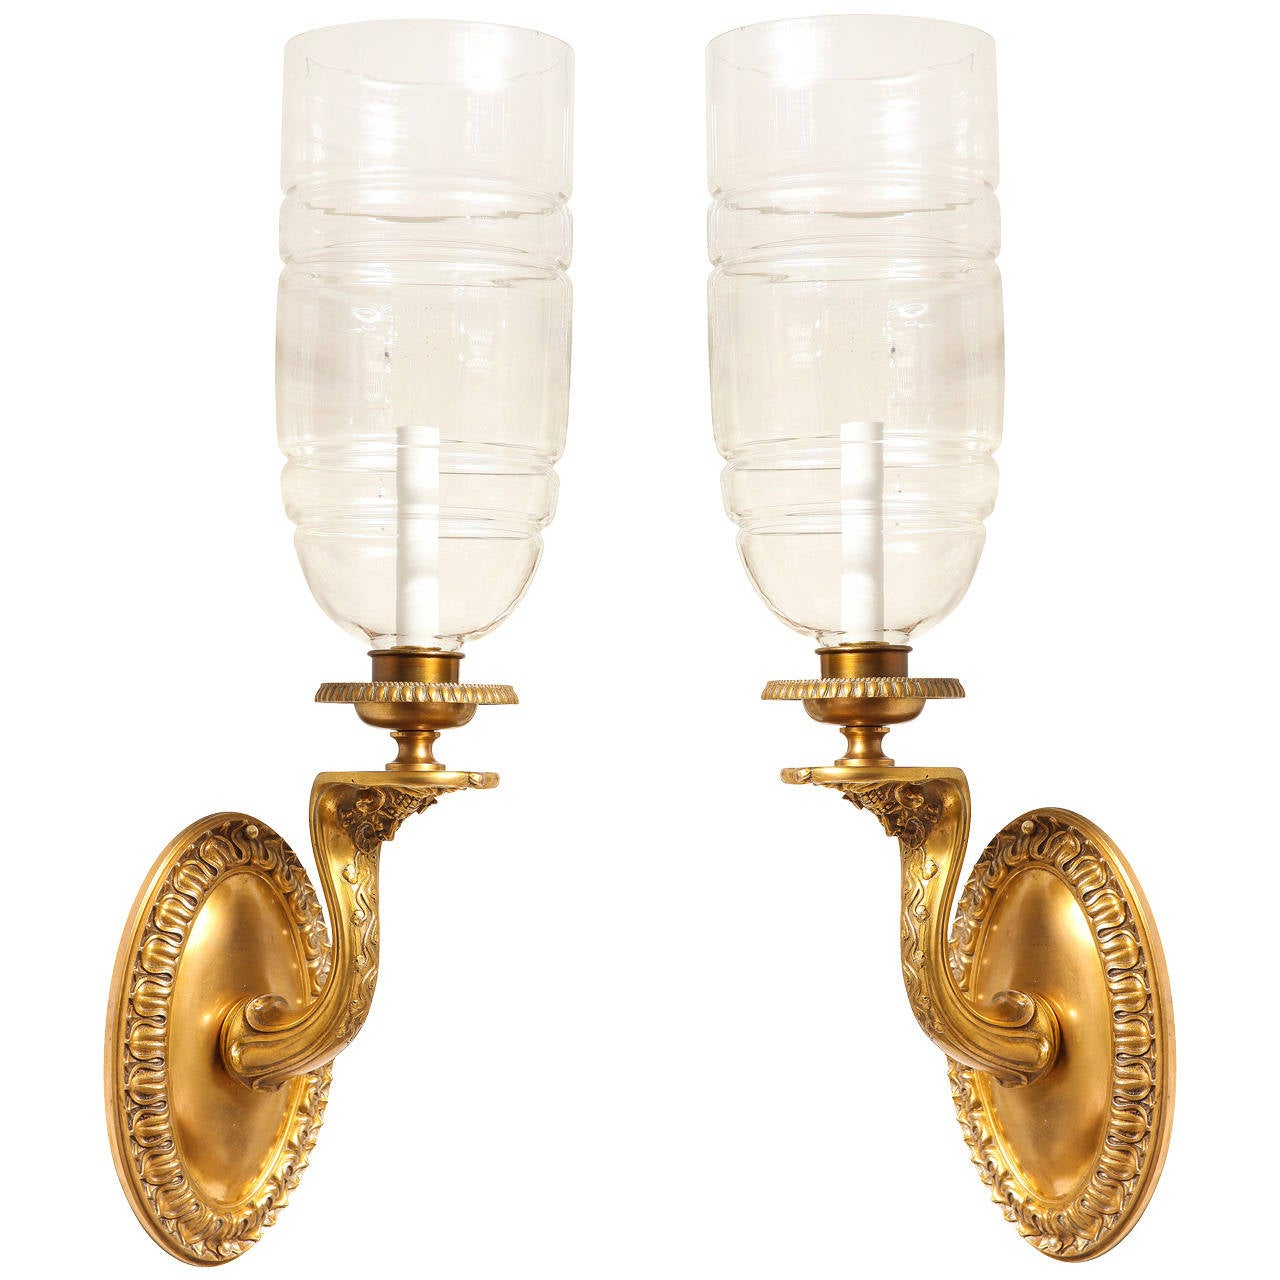 A Pair of Signed Neo-Grec Hurricane Wall Sconces by E.F Caldwell  1